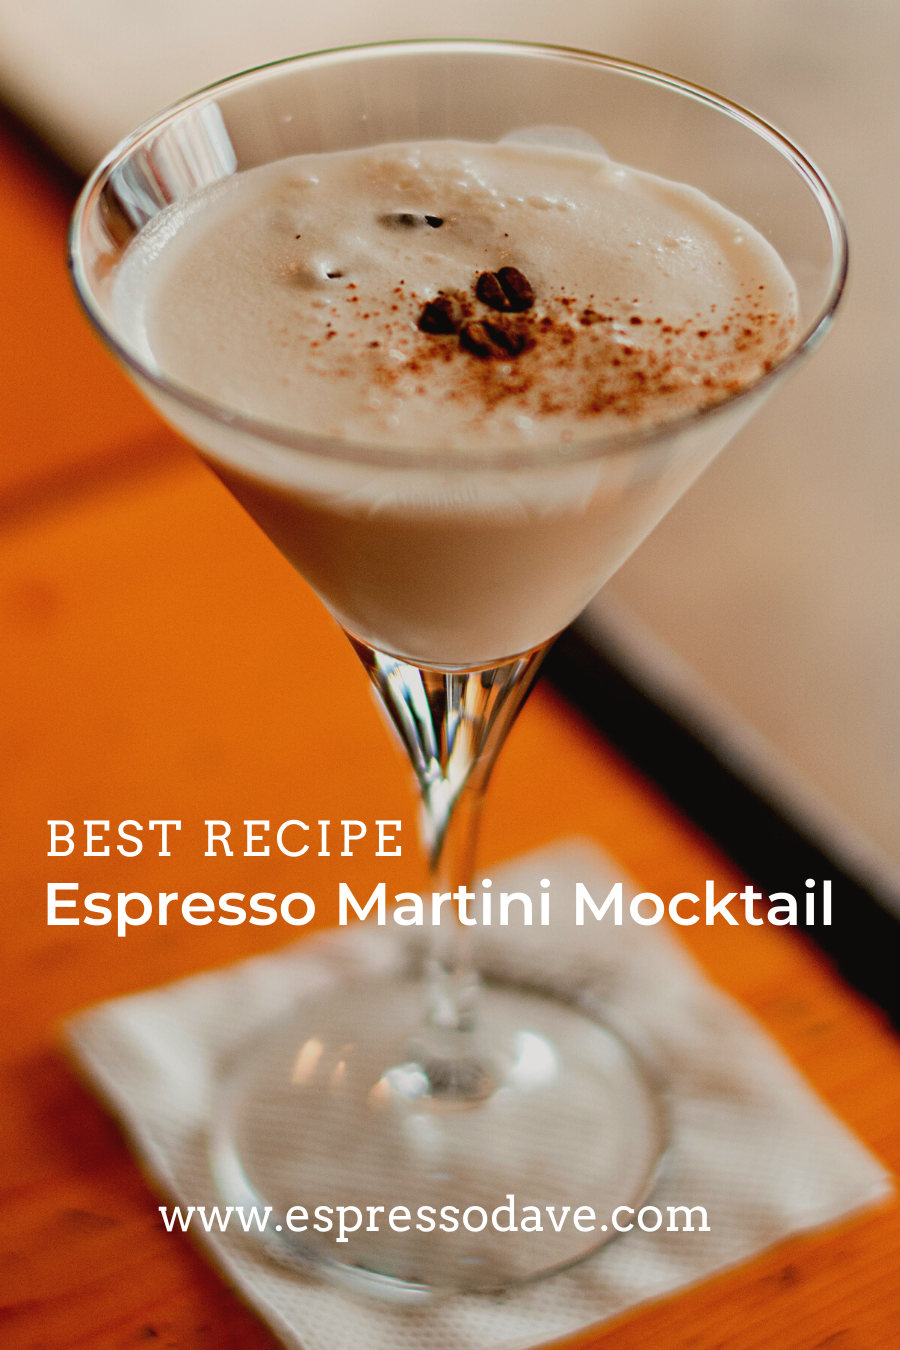 Boston's Espresso Dave Coffee Catering shares his favorite espresso martini mocktail recipe! Three ingredients is all you need for this creamy coffee beverage for Christmas, New Year's Eve or winter seasonal favorite! Click for this delicious coffee drink recipe! www.espressodave.com